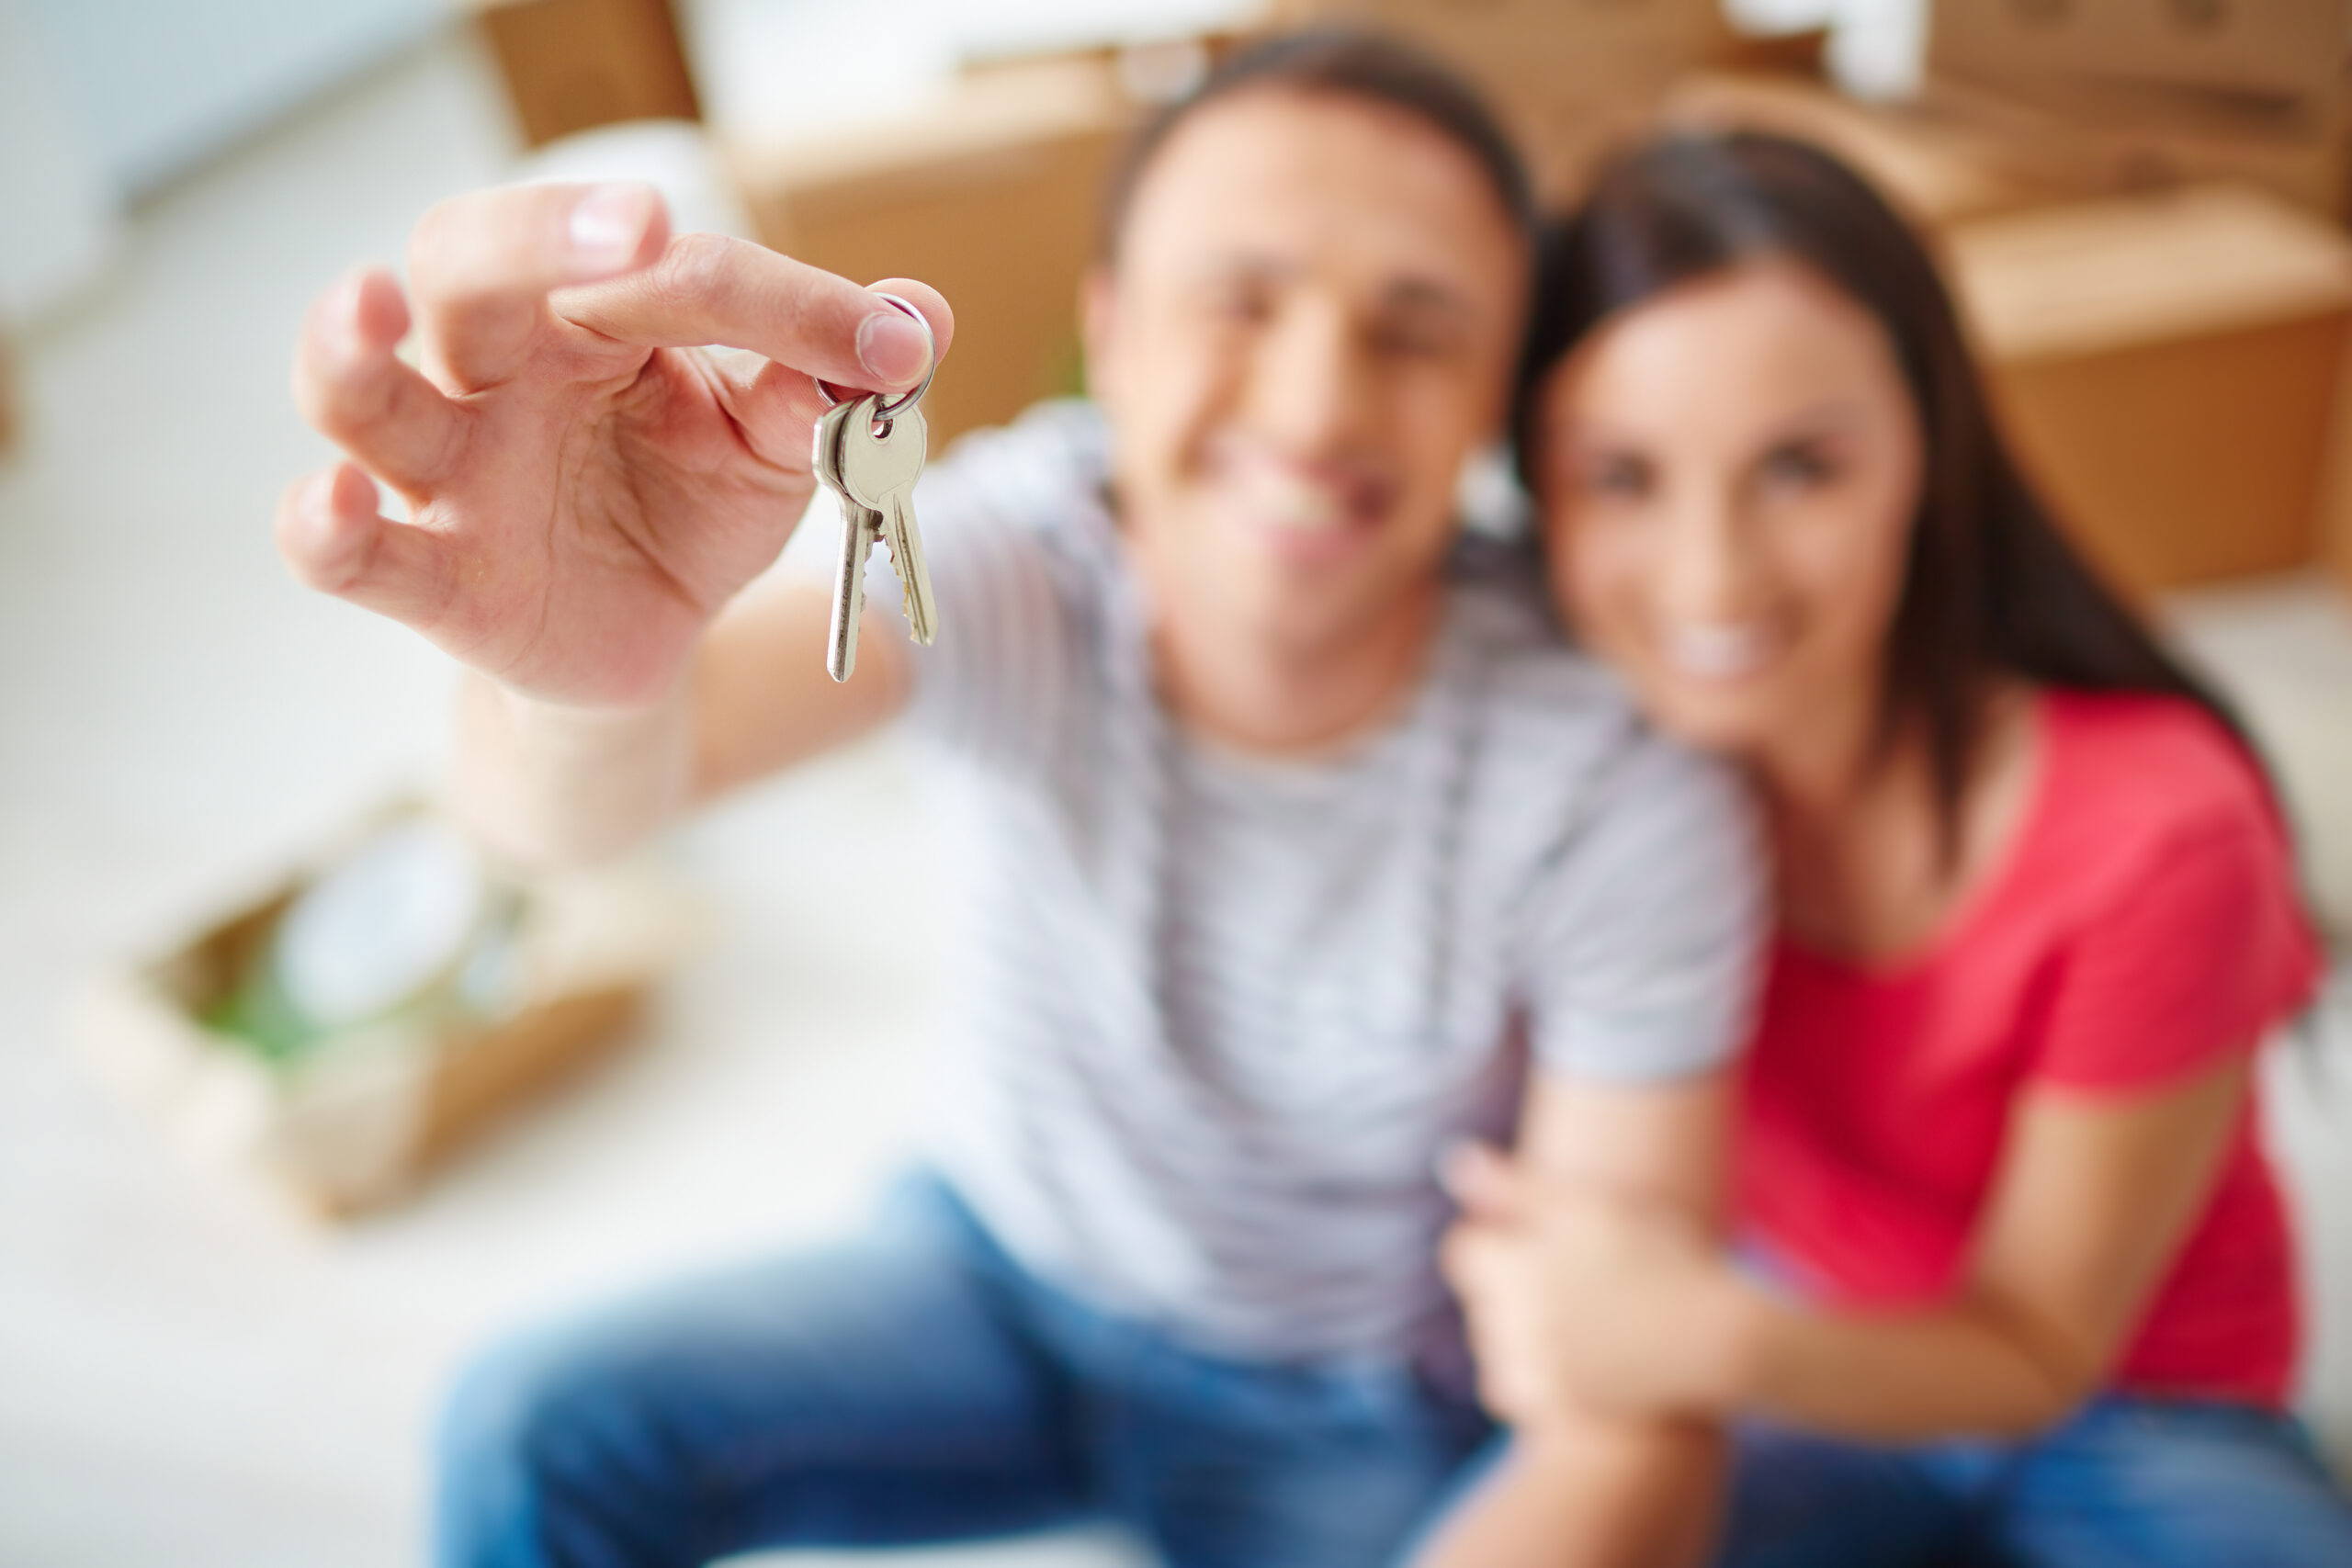 Close-up of man's hand holding house keys with soft focus couple in background